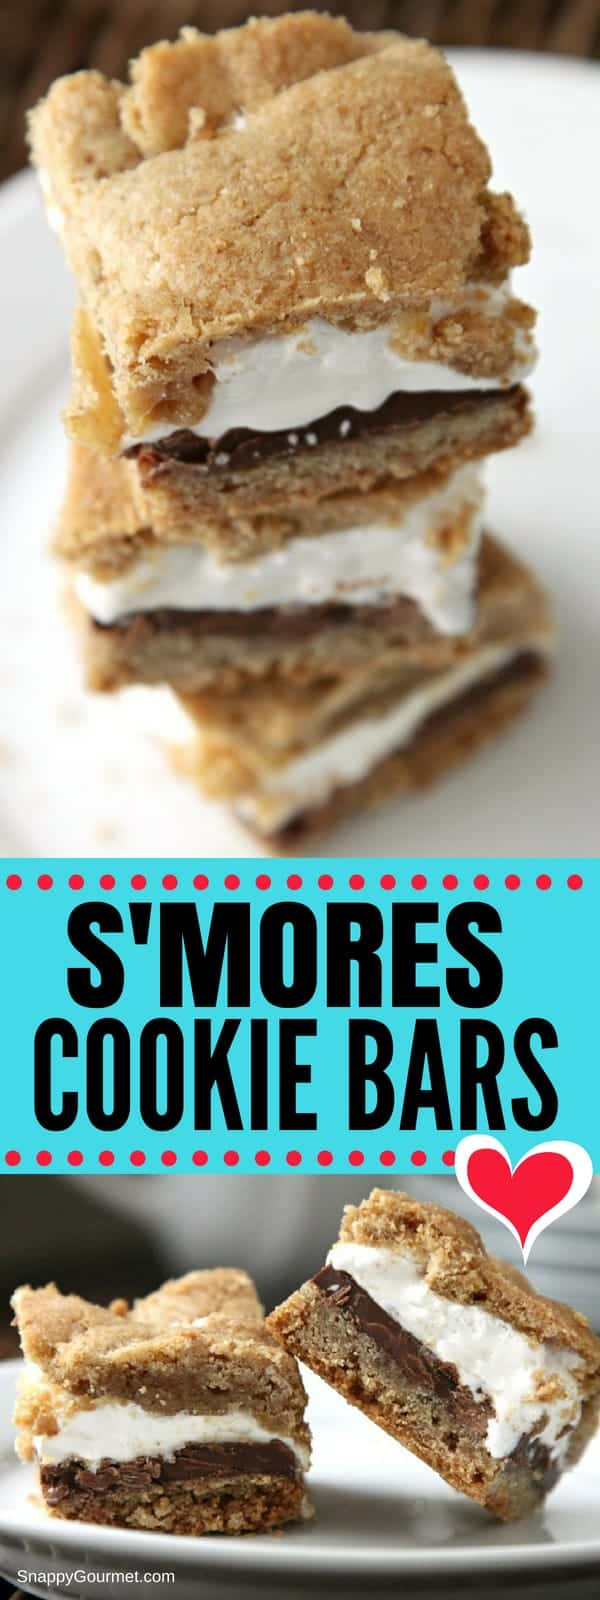 S'mores Bars - fun cookies and easy dessert bars! One of the best potluck desserts and party foods because no campfire needed! #Smores #Potluck #Dessert #SnappyGourmet #Chocolate #Marshmallow #yum #s'more #party #partyfood